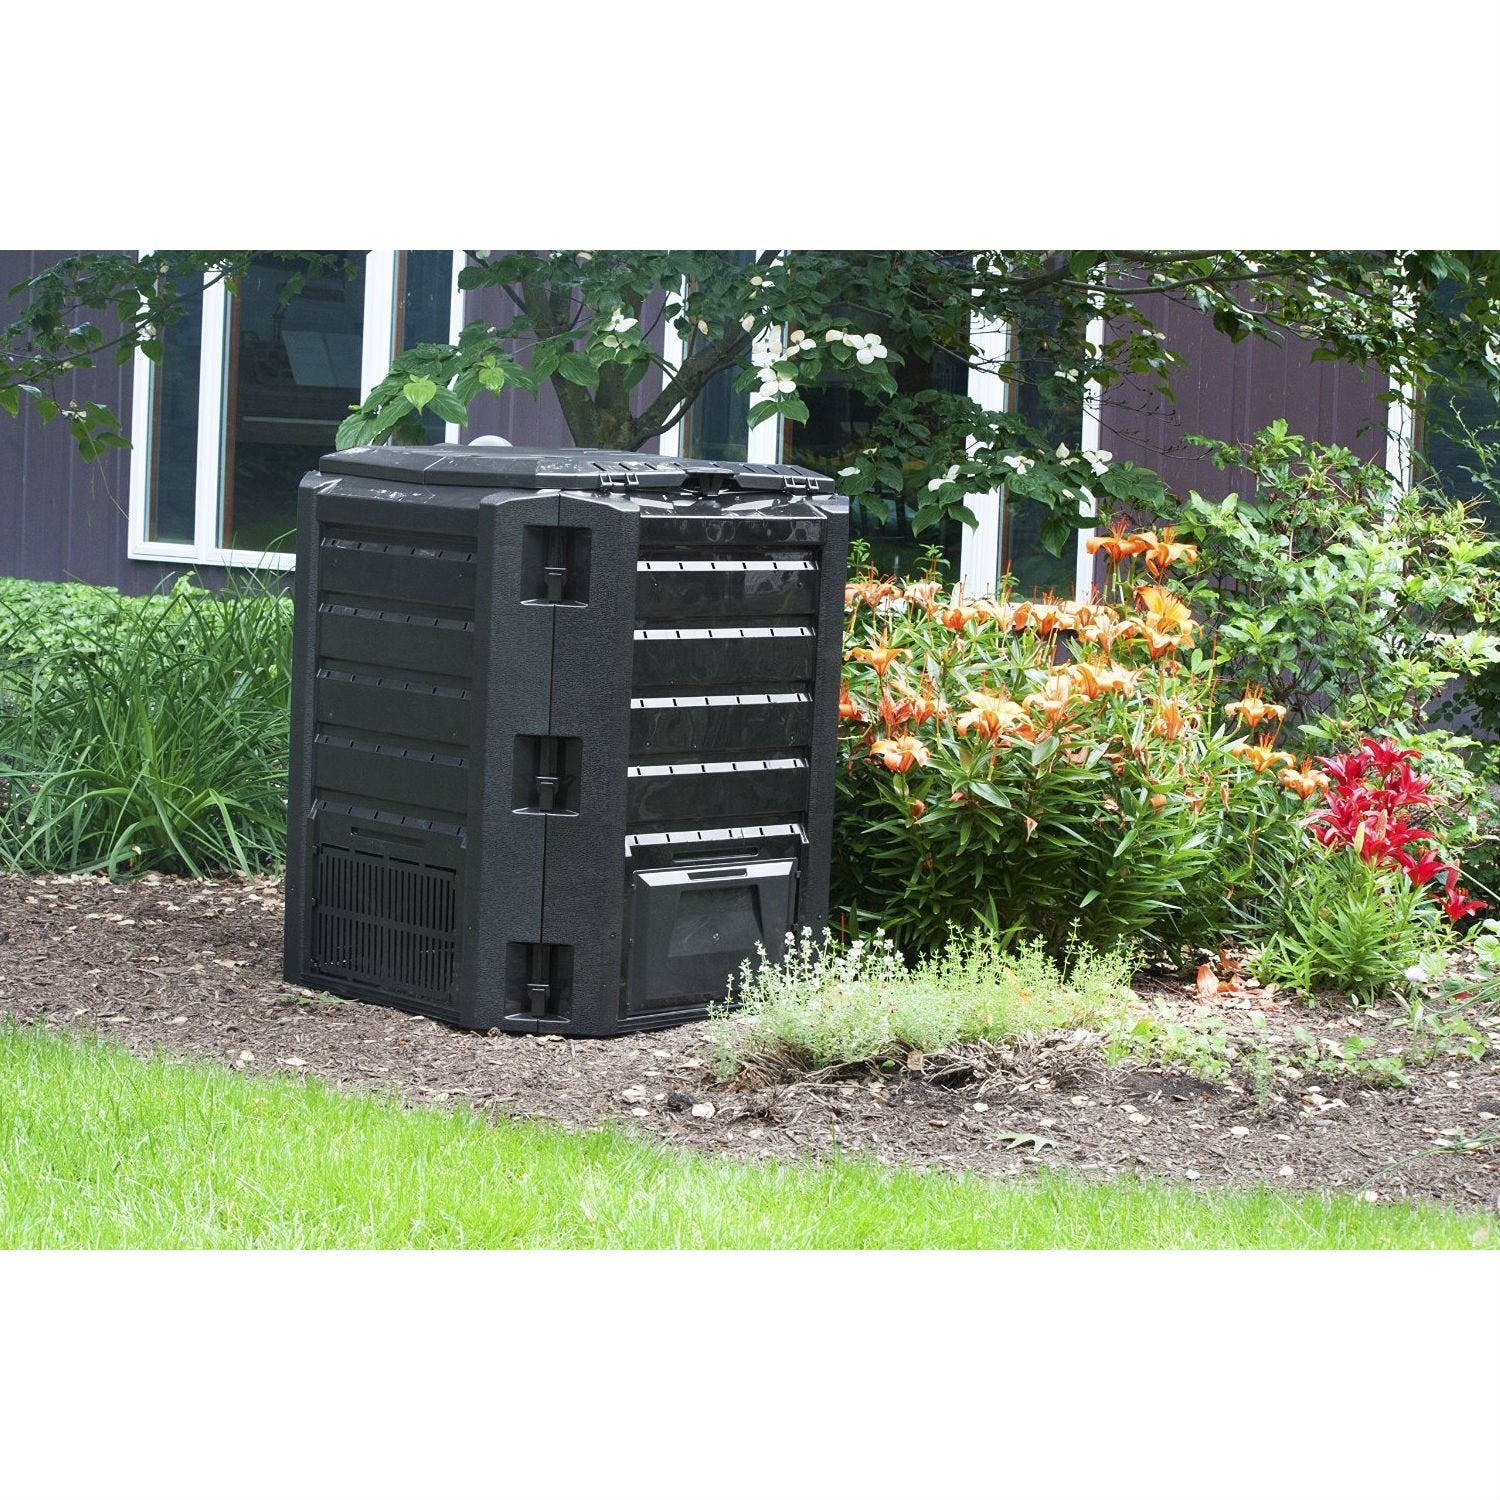 Black Composter 100-Gallon Compost Bin for Home Composting